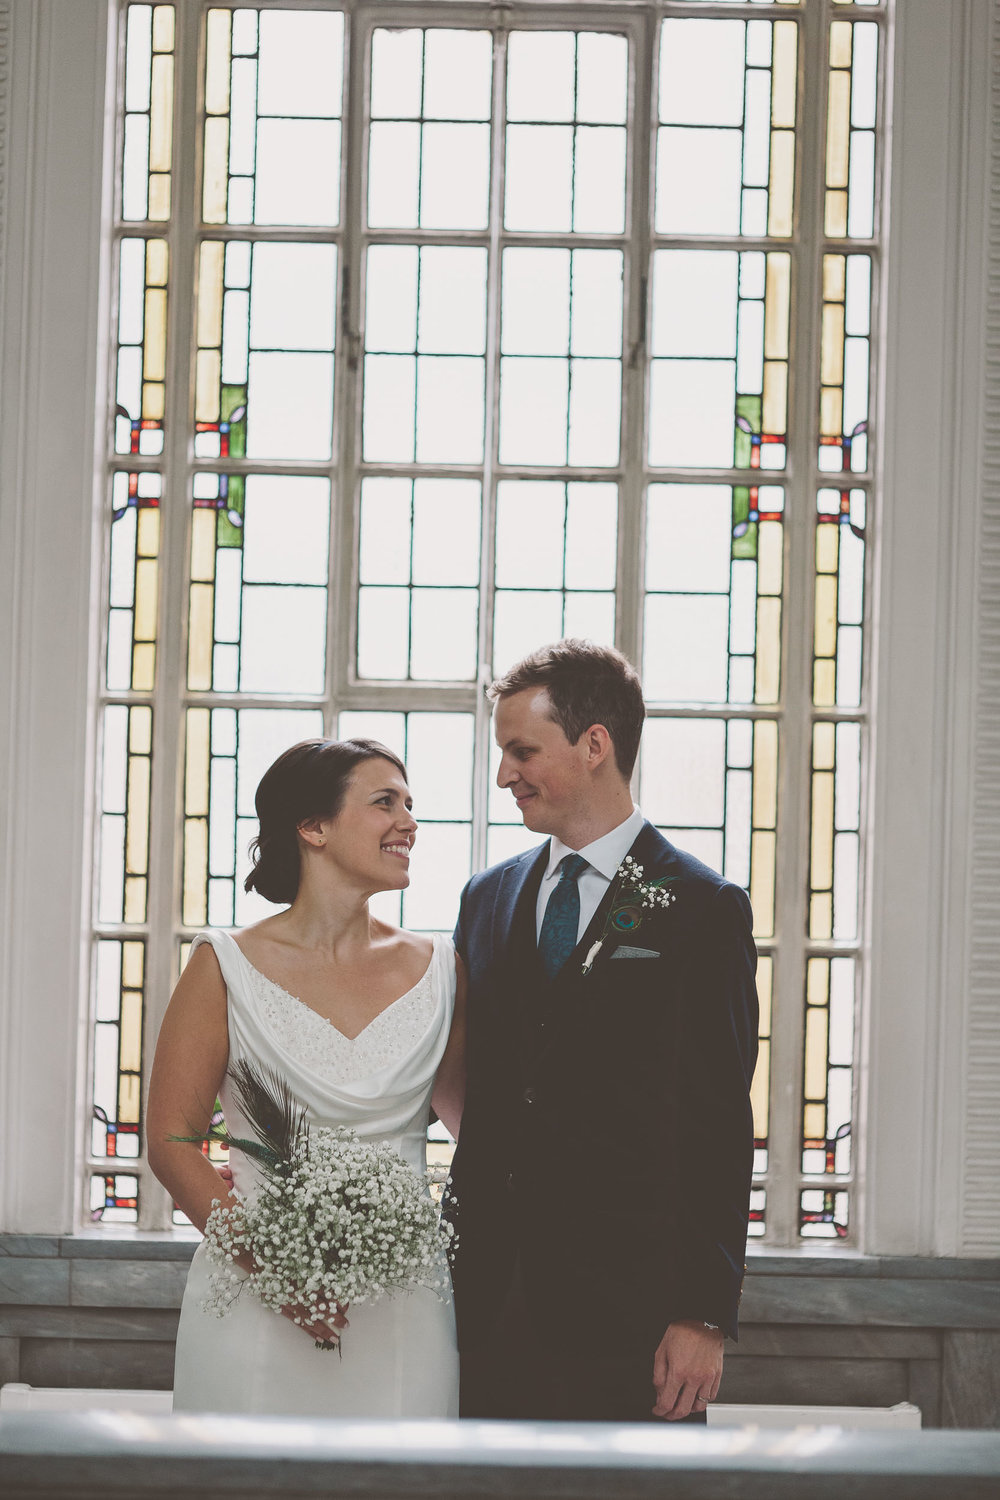 islington-town-hall-4th-floor-studios-wedding137.jpg